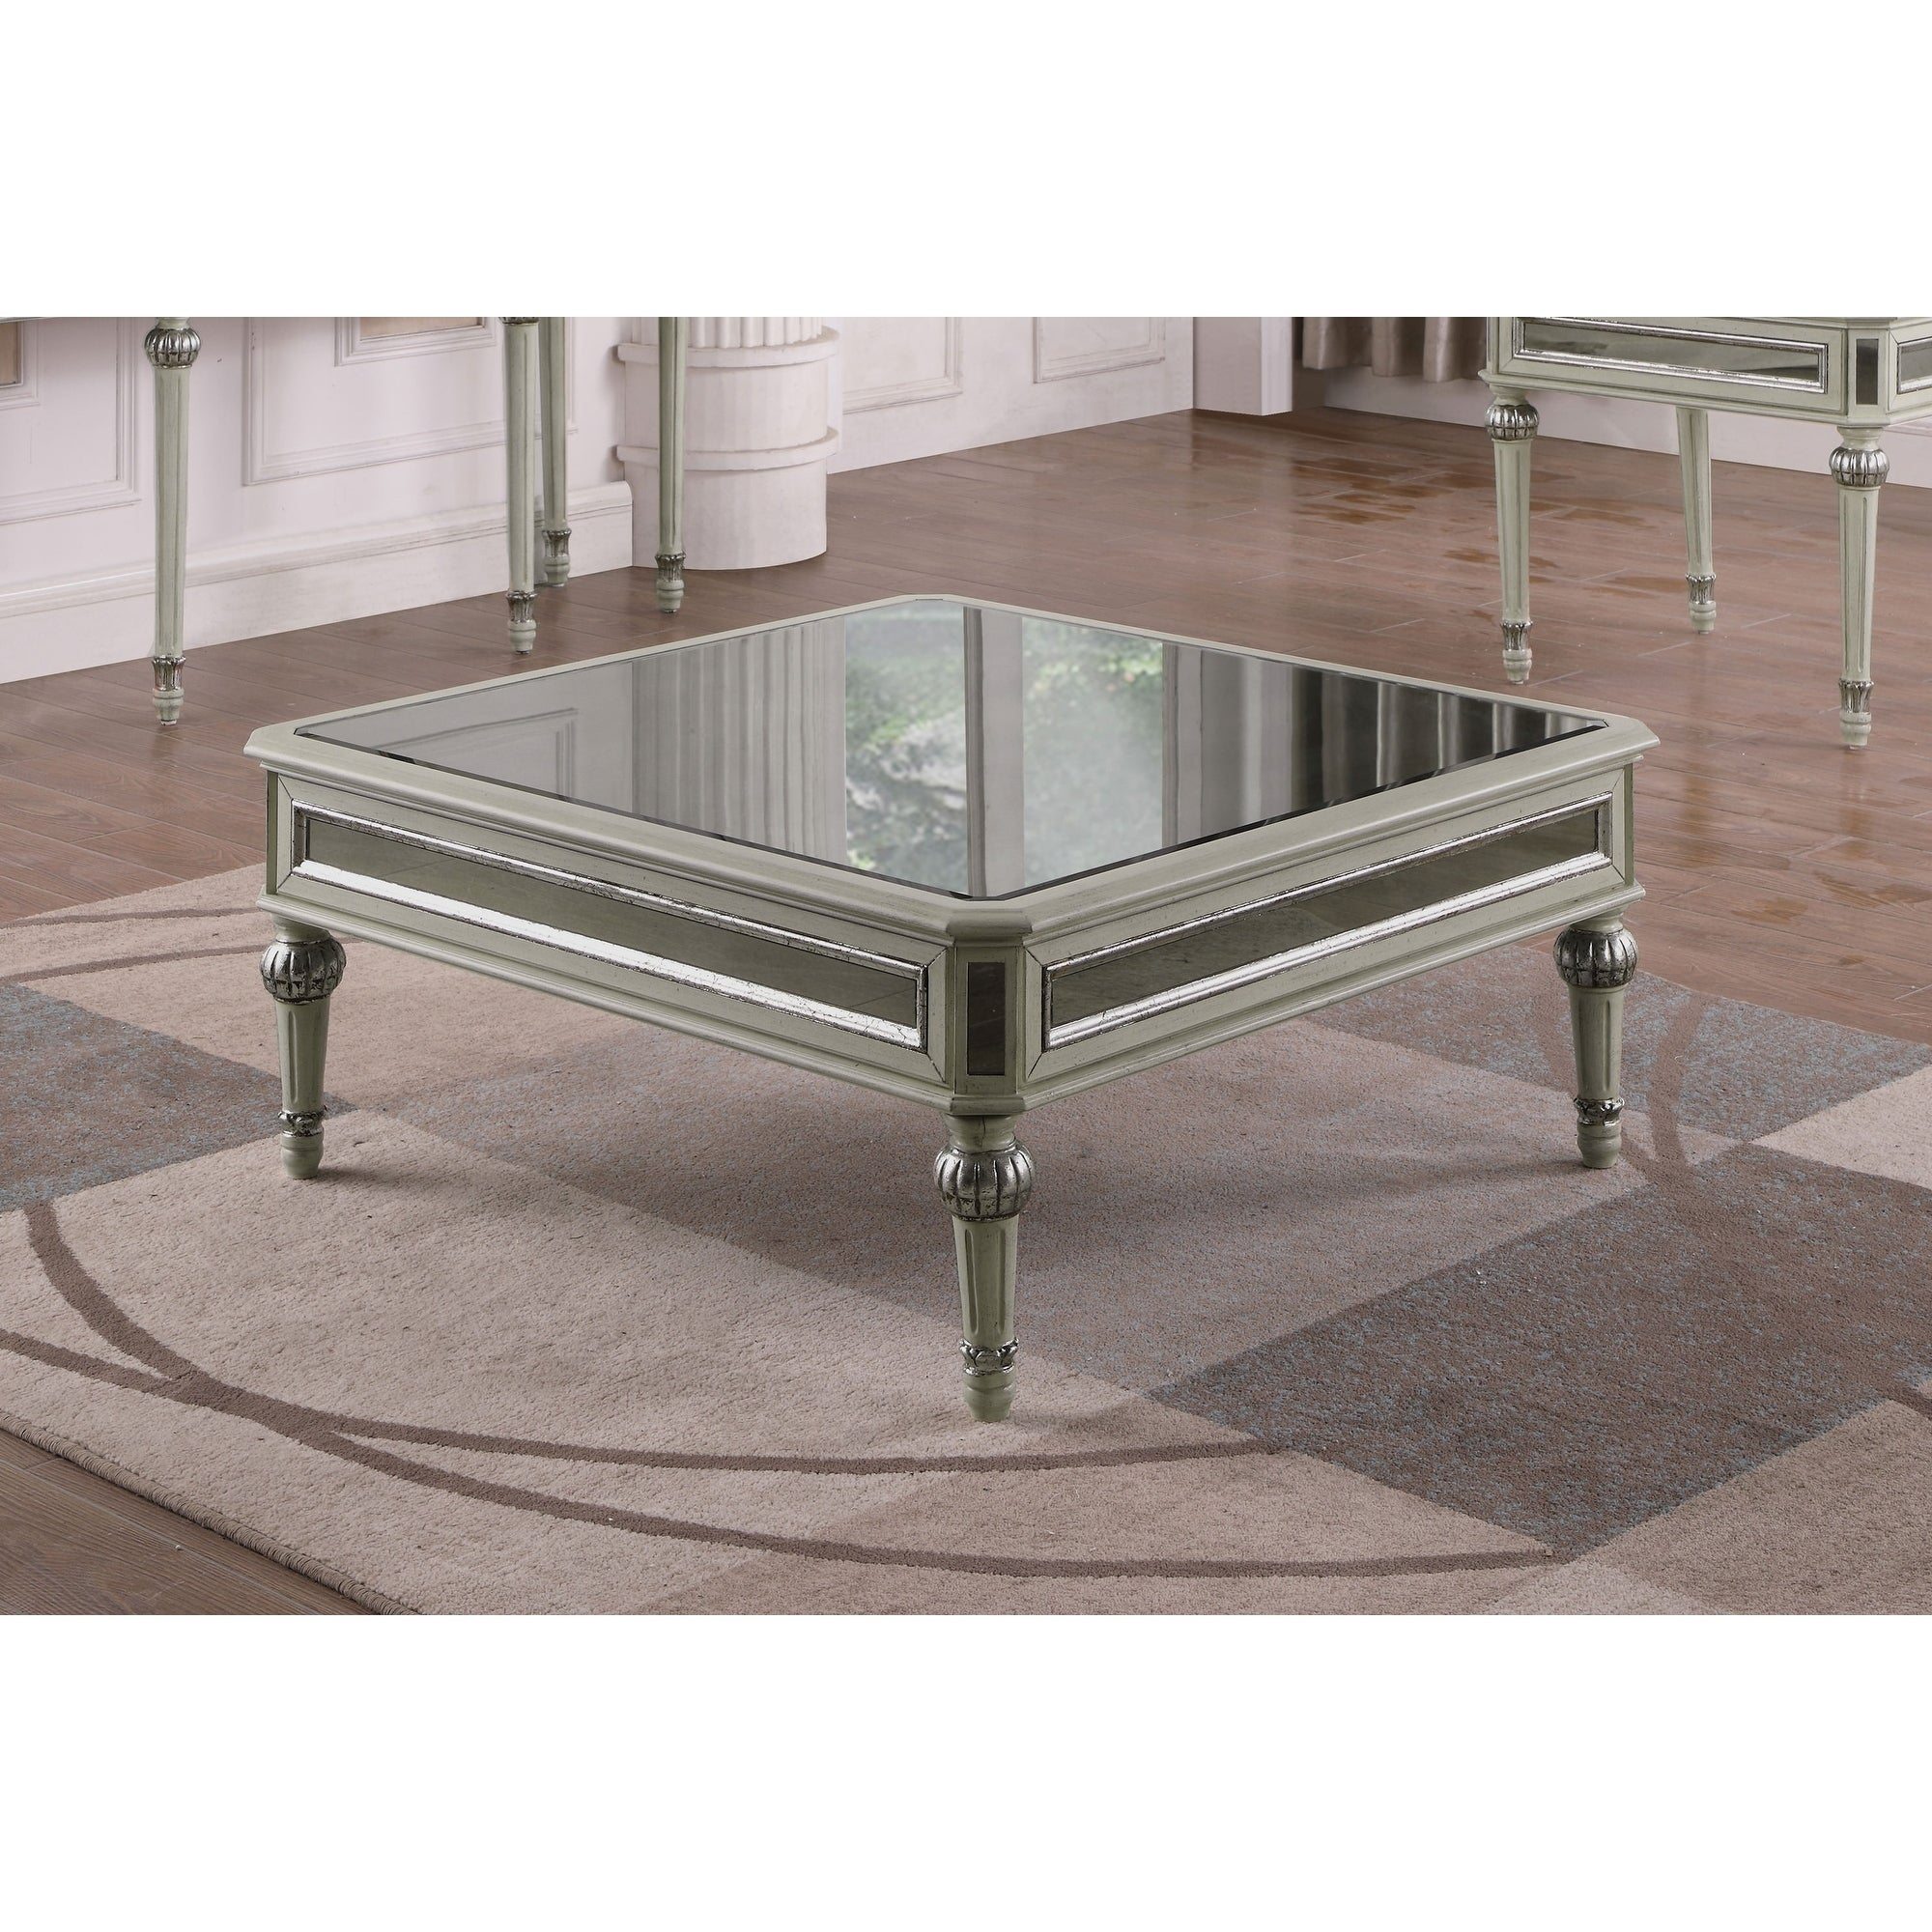 Best Master Furniture Antique Cream With Mirrored Square Coffee Table Free Shipping Today 21383517